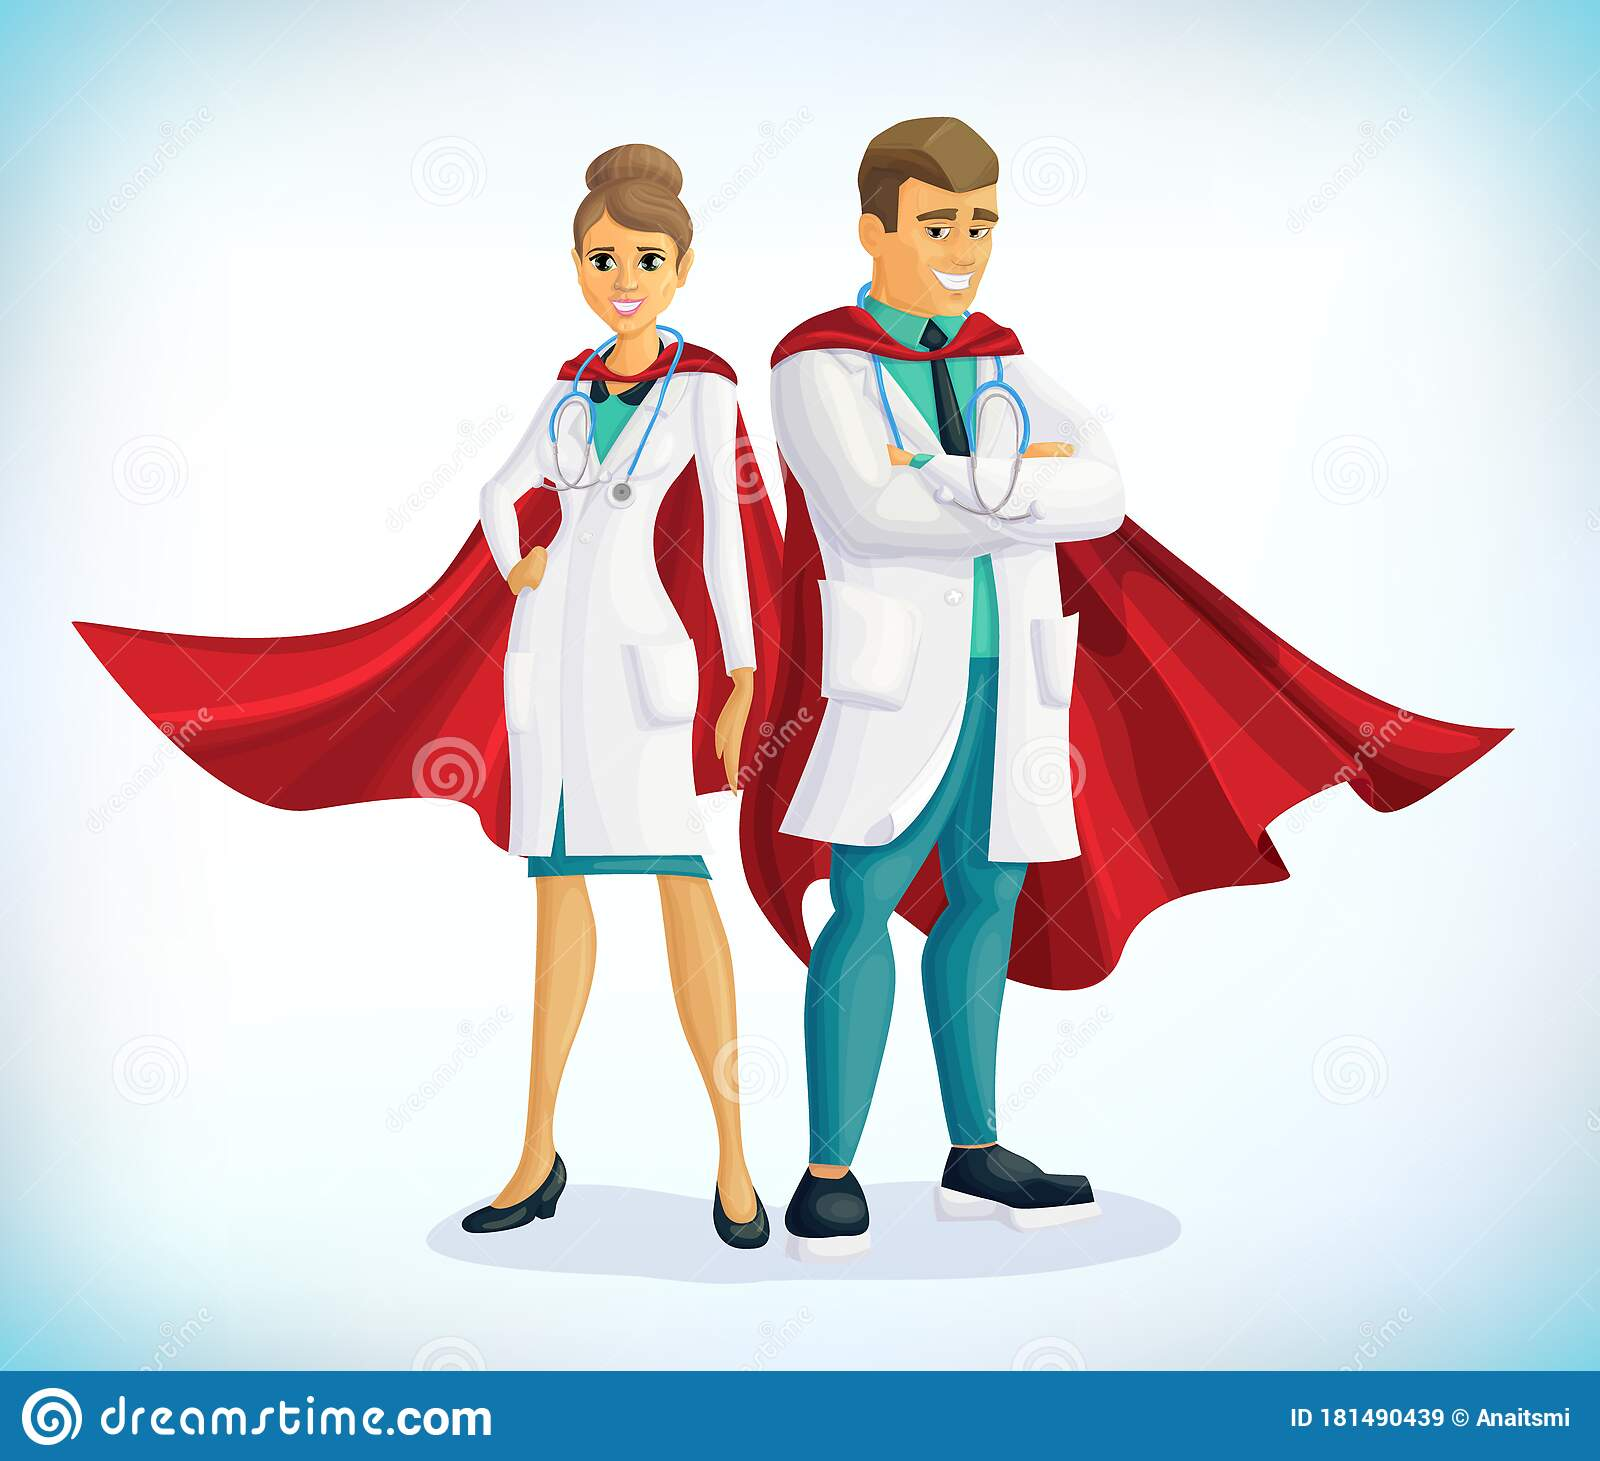 Stethoscope Medical Comic Character Vector Illustration ...